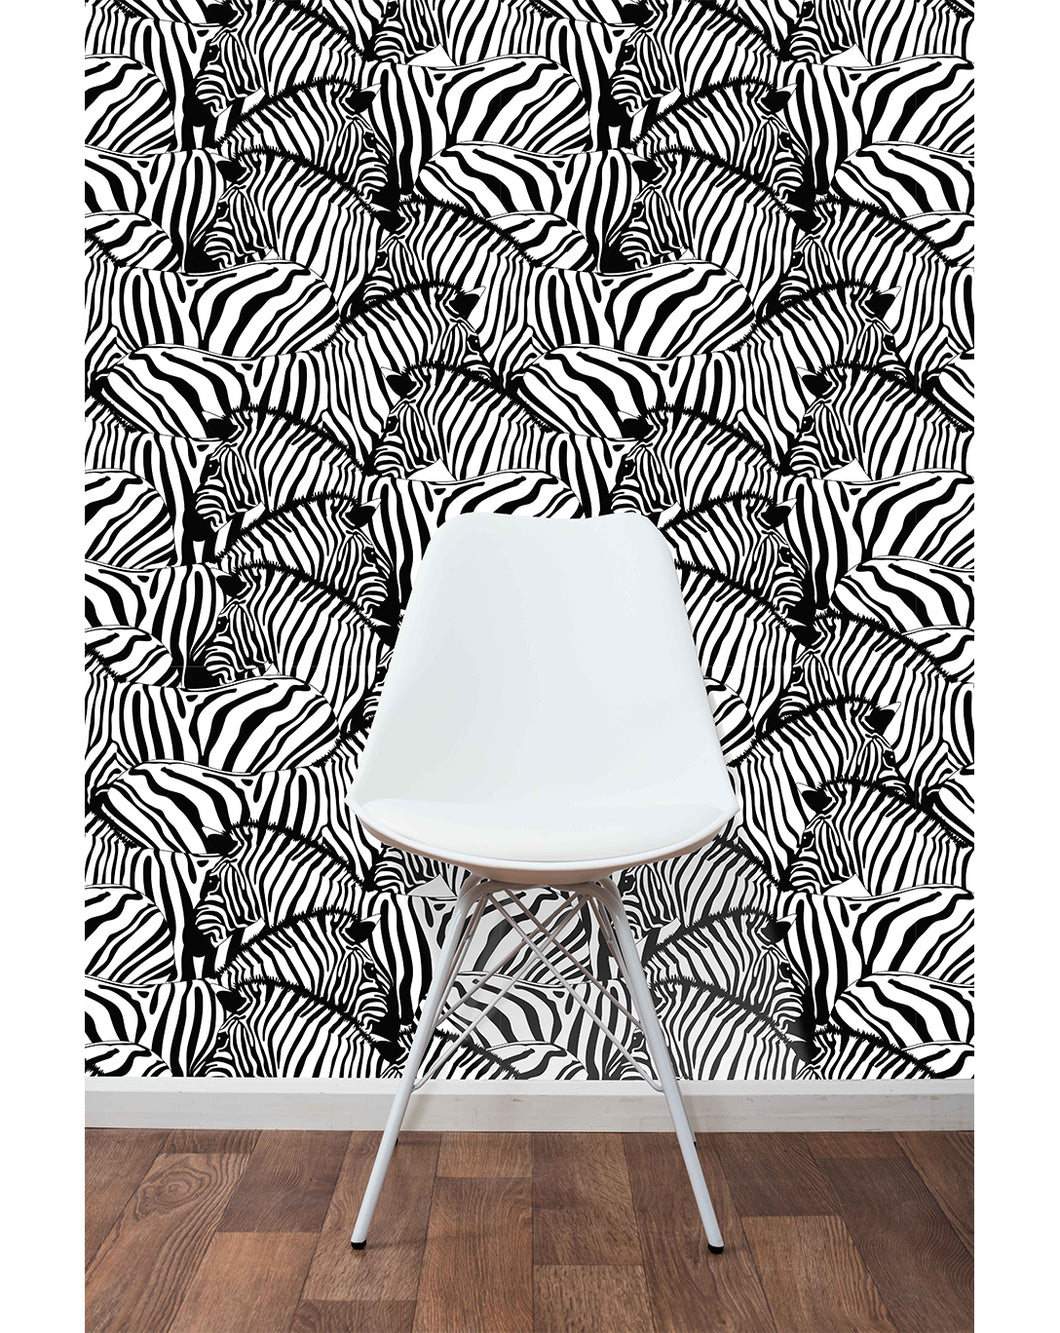 Self Adhesive Removable Wallpaper Black And White Zebras Wall Decor Costacover